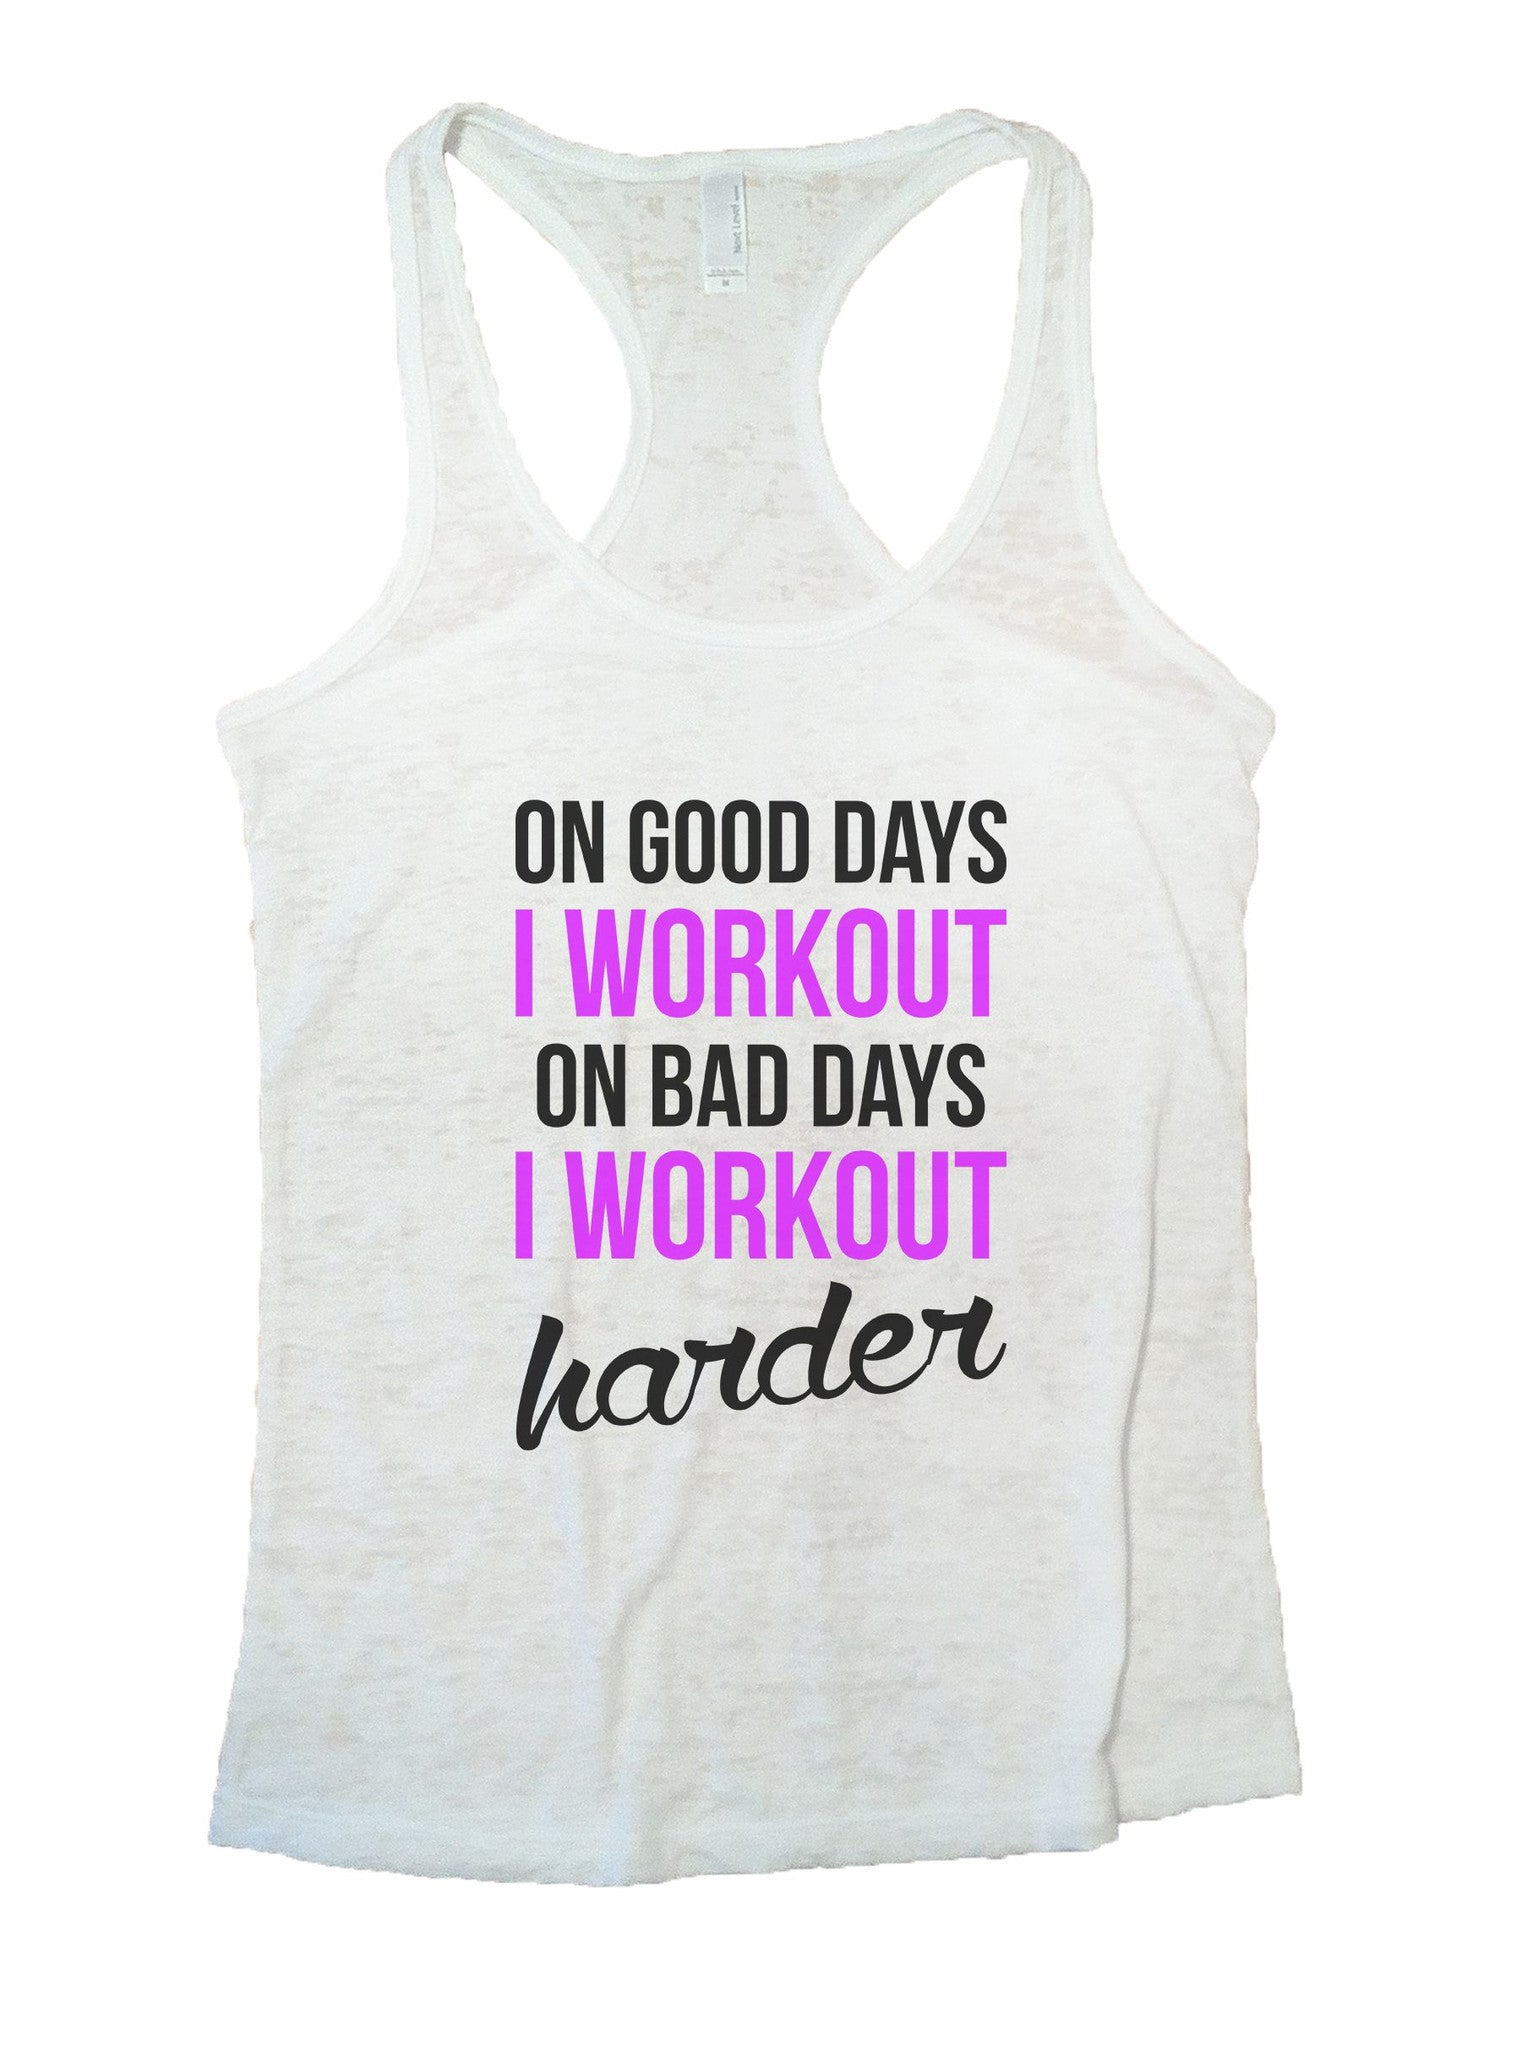 On Good Days I Workout On Bad Days I Workout Harder Burnout Tank Top By BurnoutTankTops.com - 850 - Funny Shirts Tank Tops Burnouts and Triblends  - 6